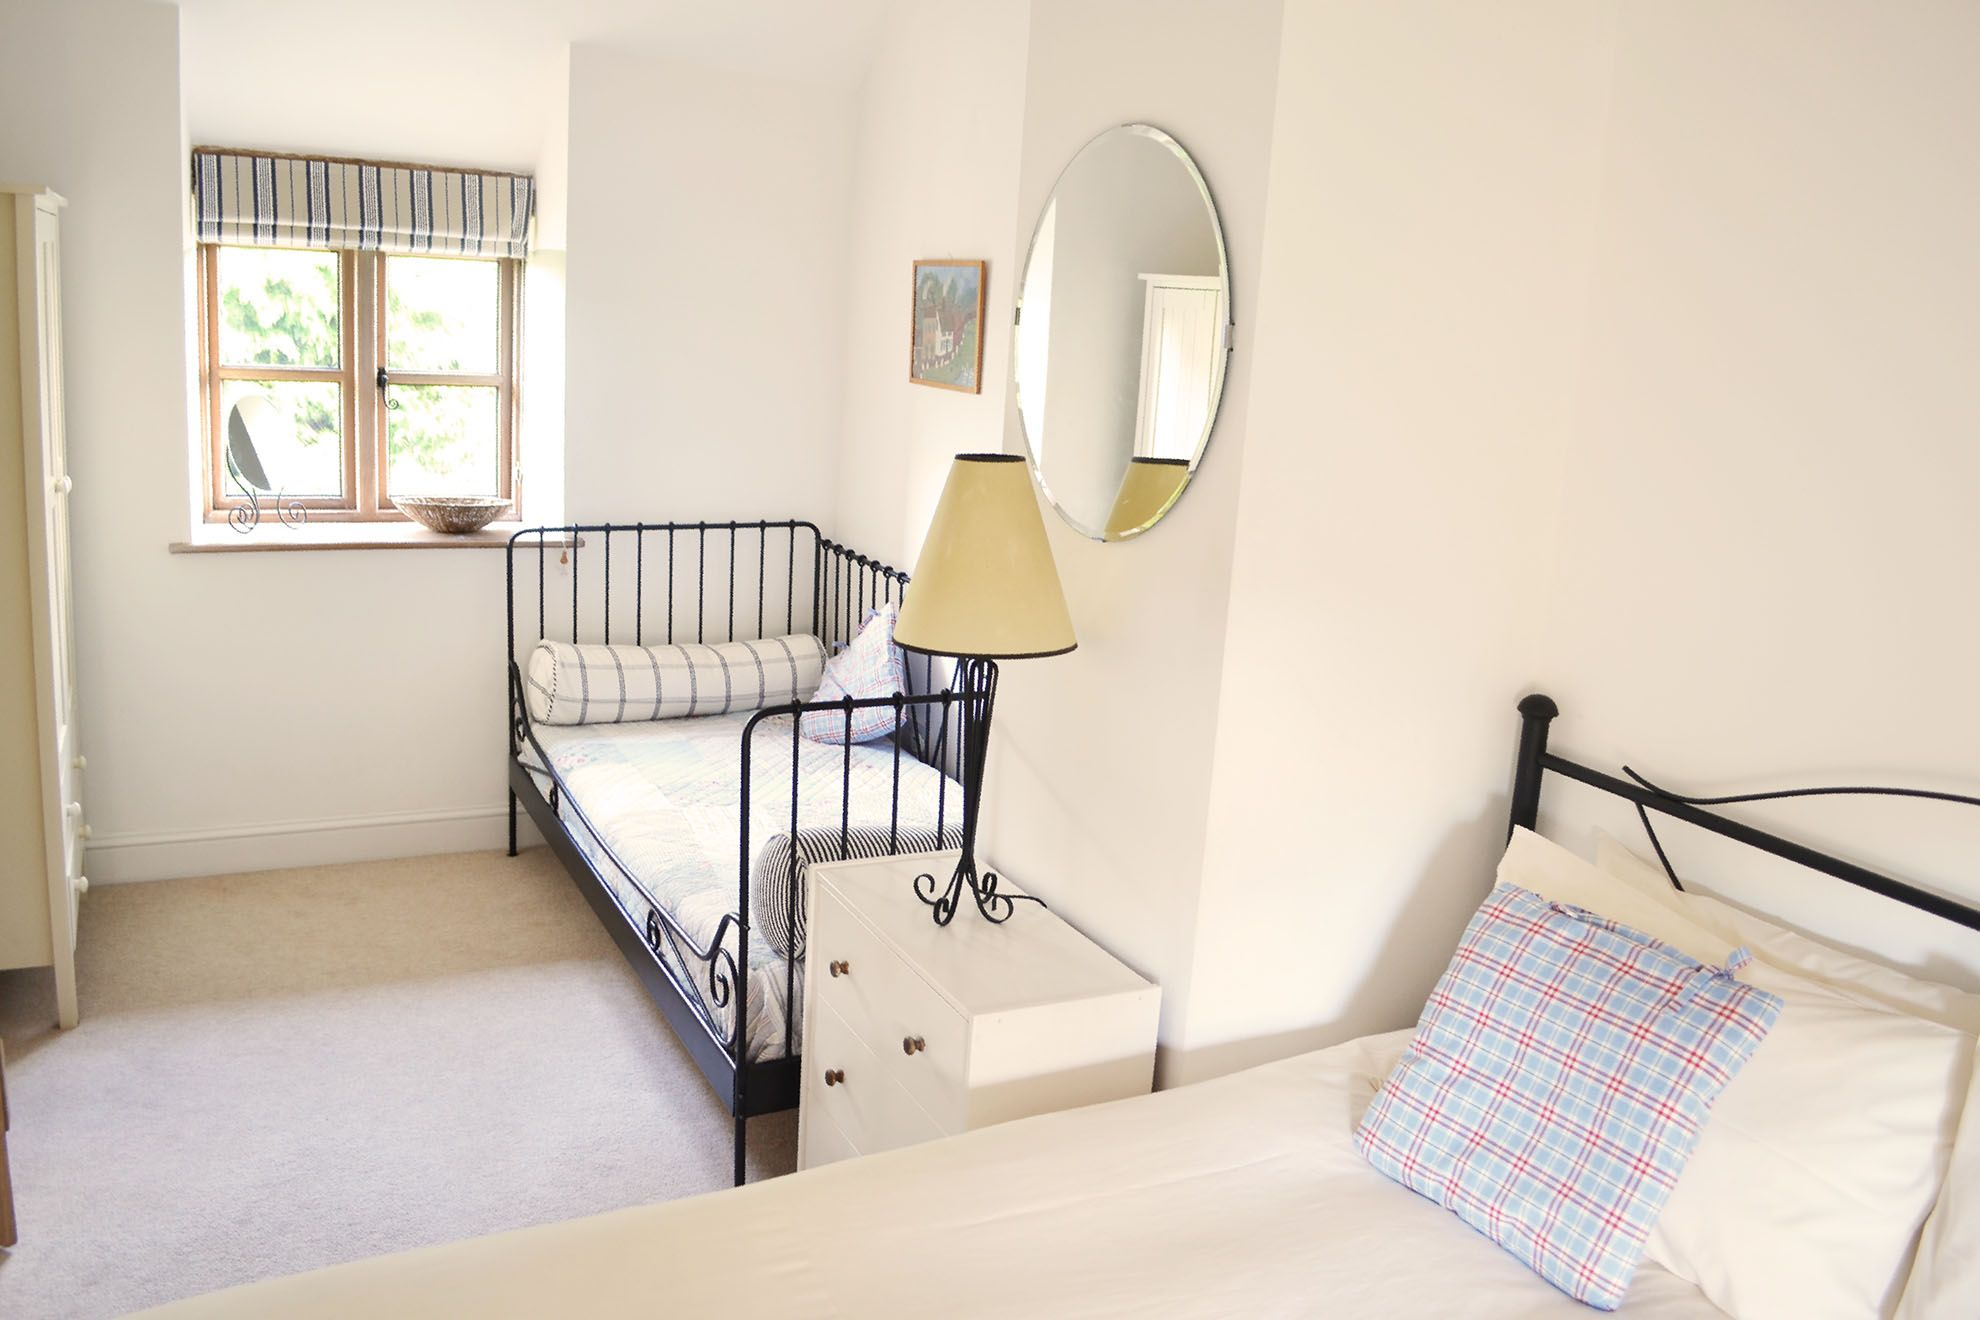 First floor: Spacious double bedroom with a 5' bed and a day bed